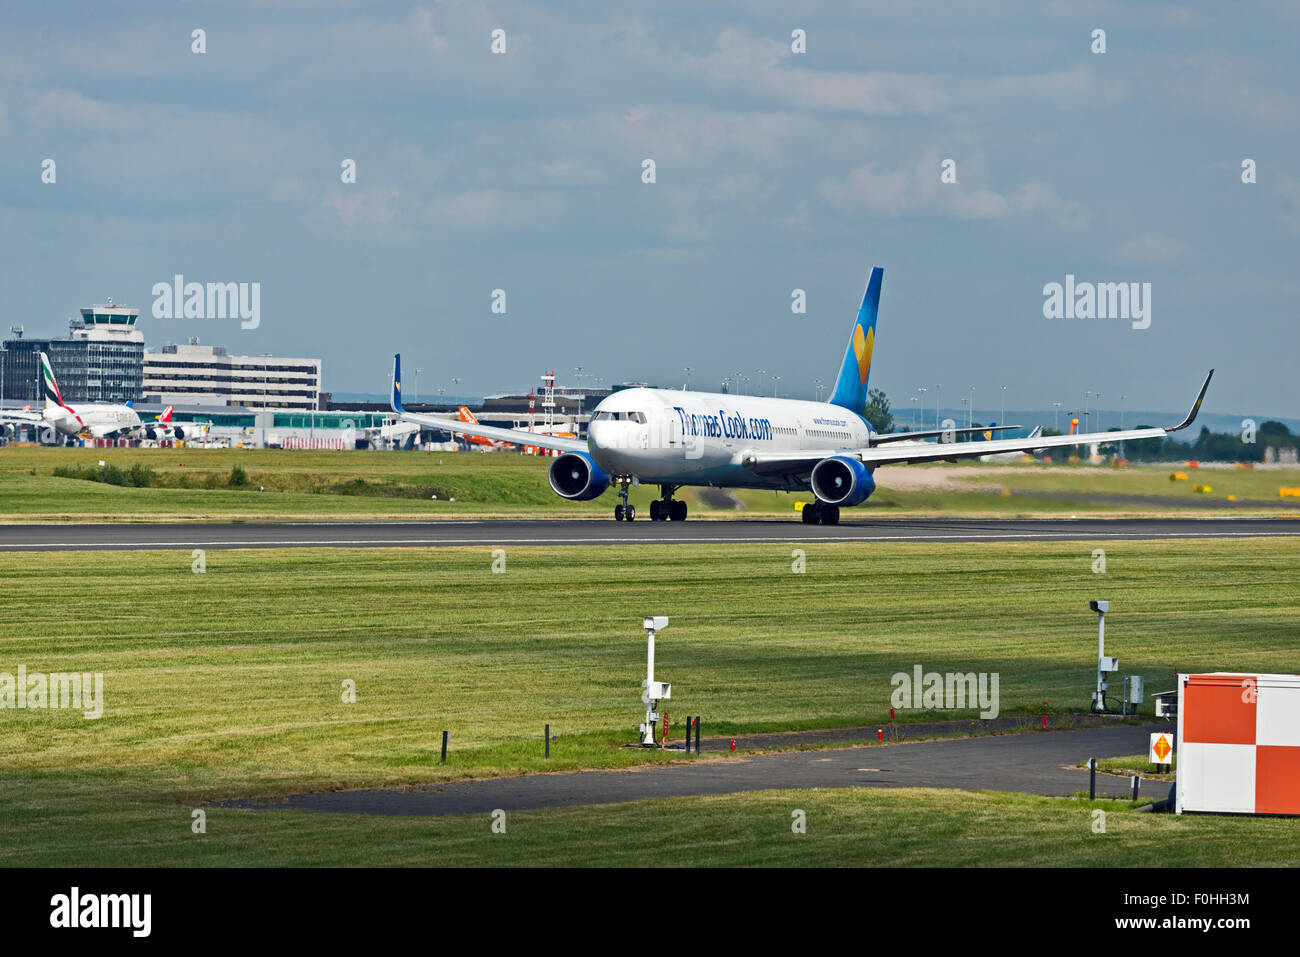 Condor Flugdienst Stock Photos & Condor Flugdienst Stock Images - Alamy